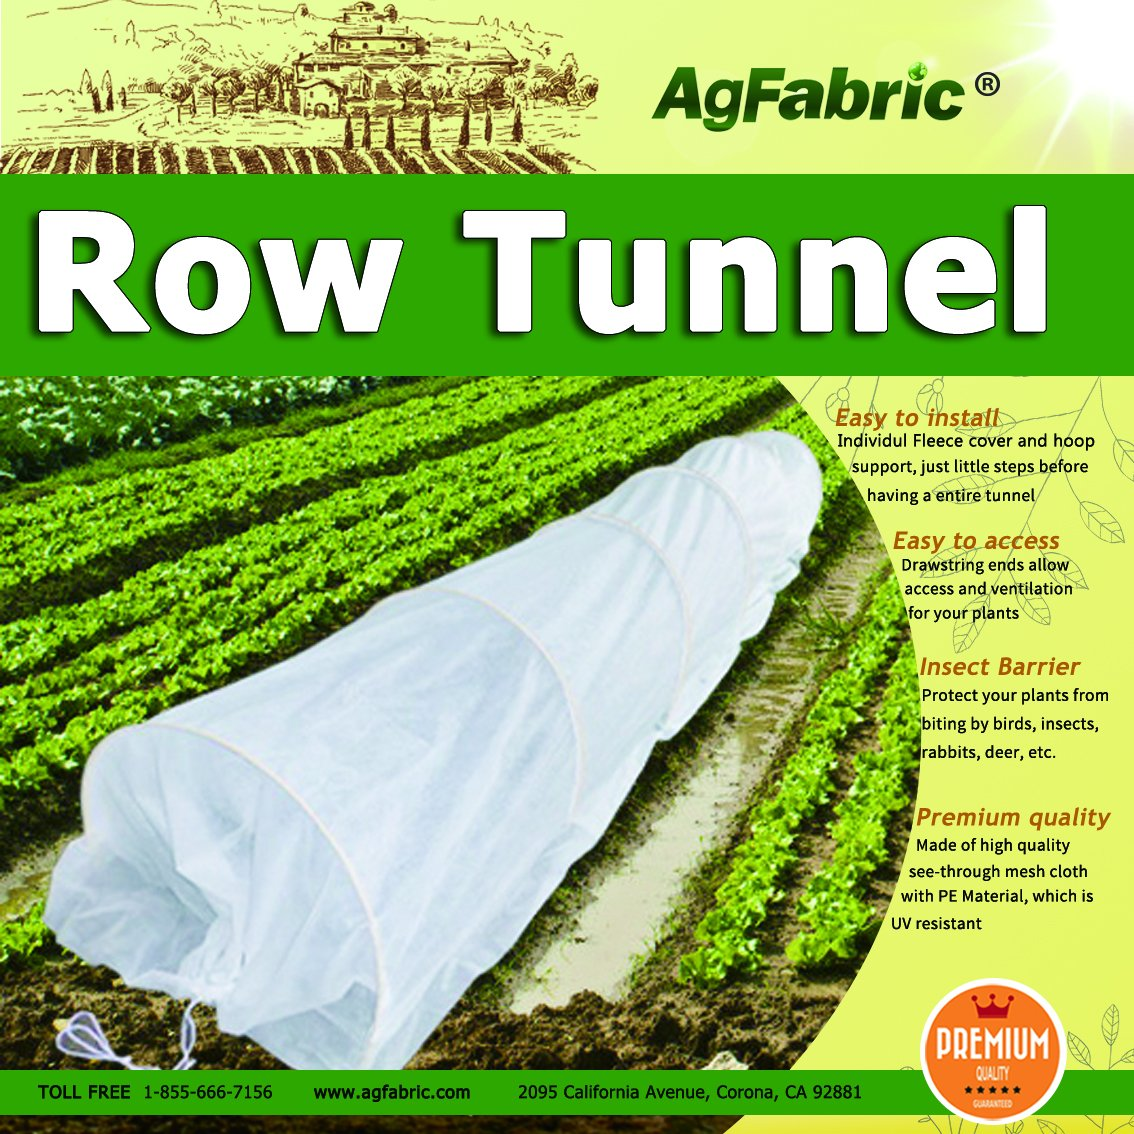 RowTunnel 45FT Long Agfabric Grow Tunnel kit, 0.55oz Floating Row Cover with Tunnel Hoops,Plant Cover &Frost Blanket For Season Extension and Seed Germination Support by Agfabric (Image #1)